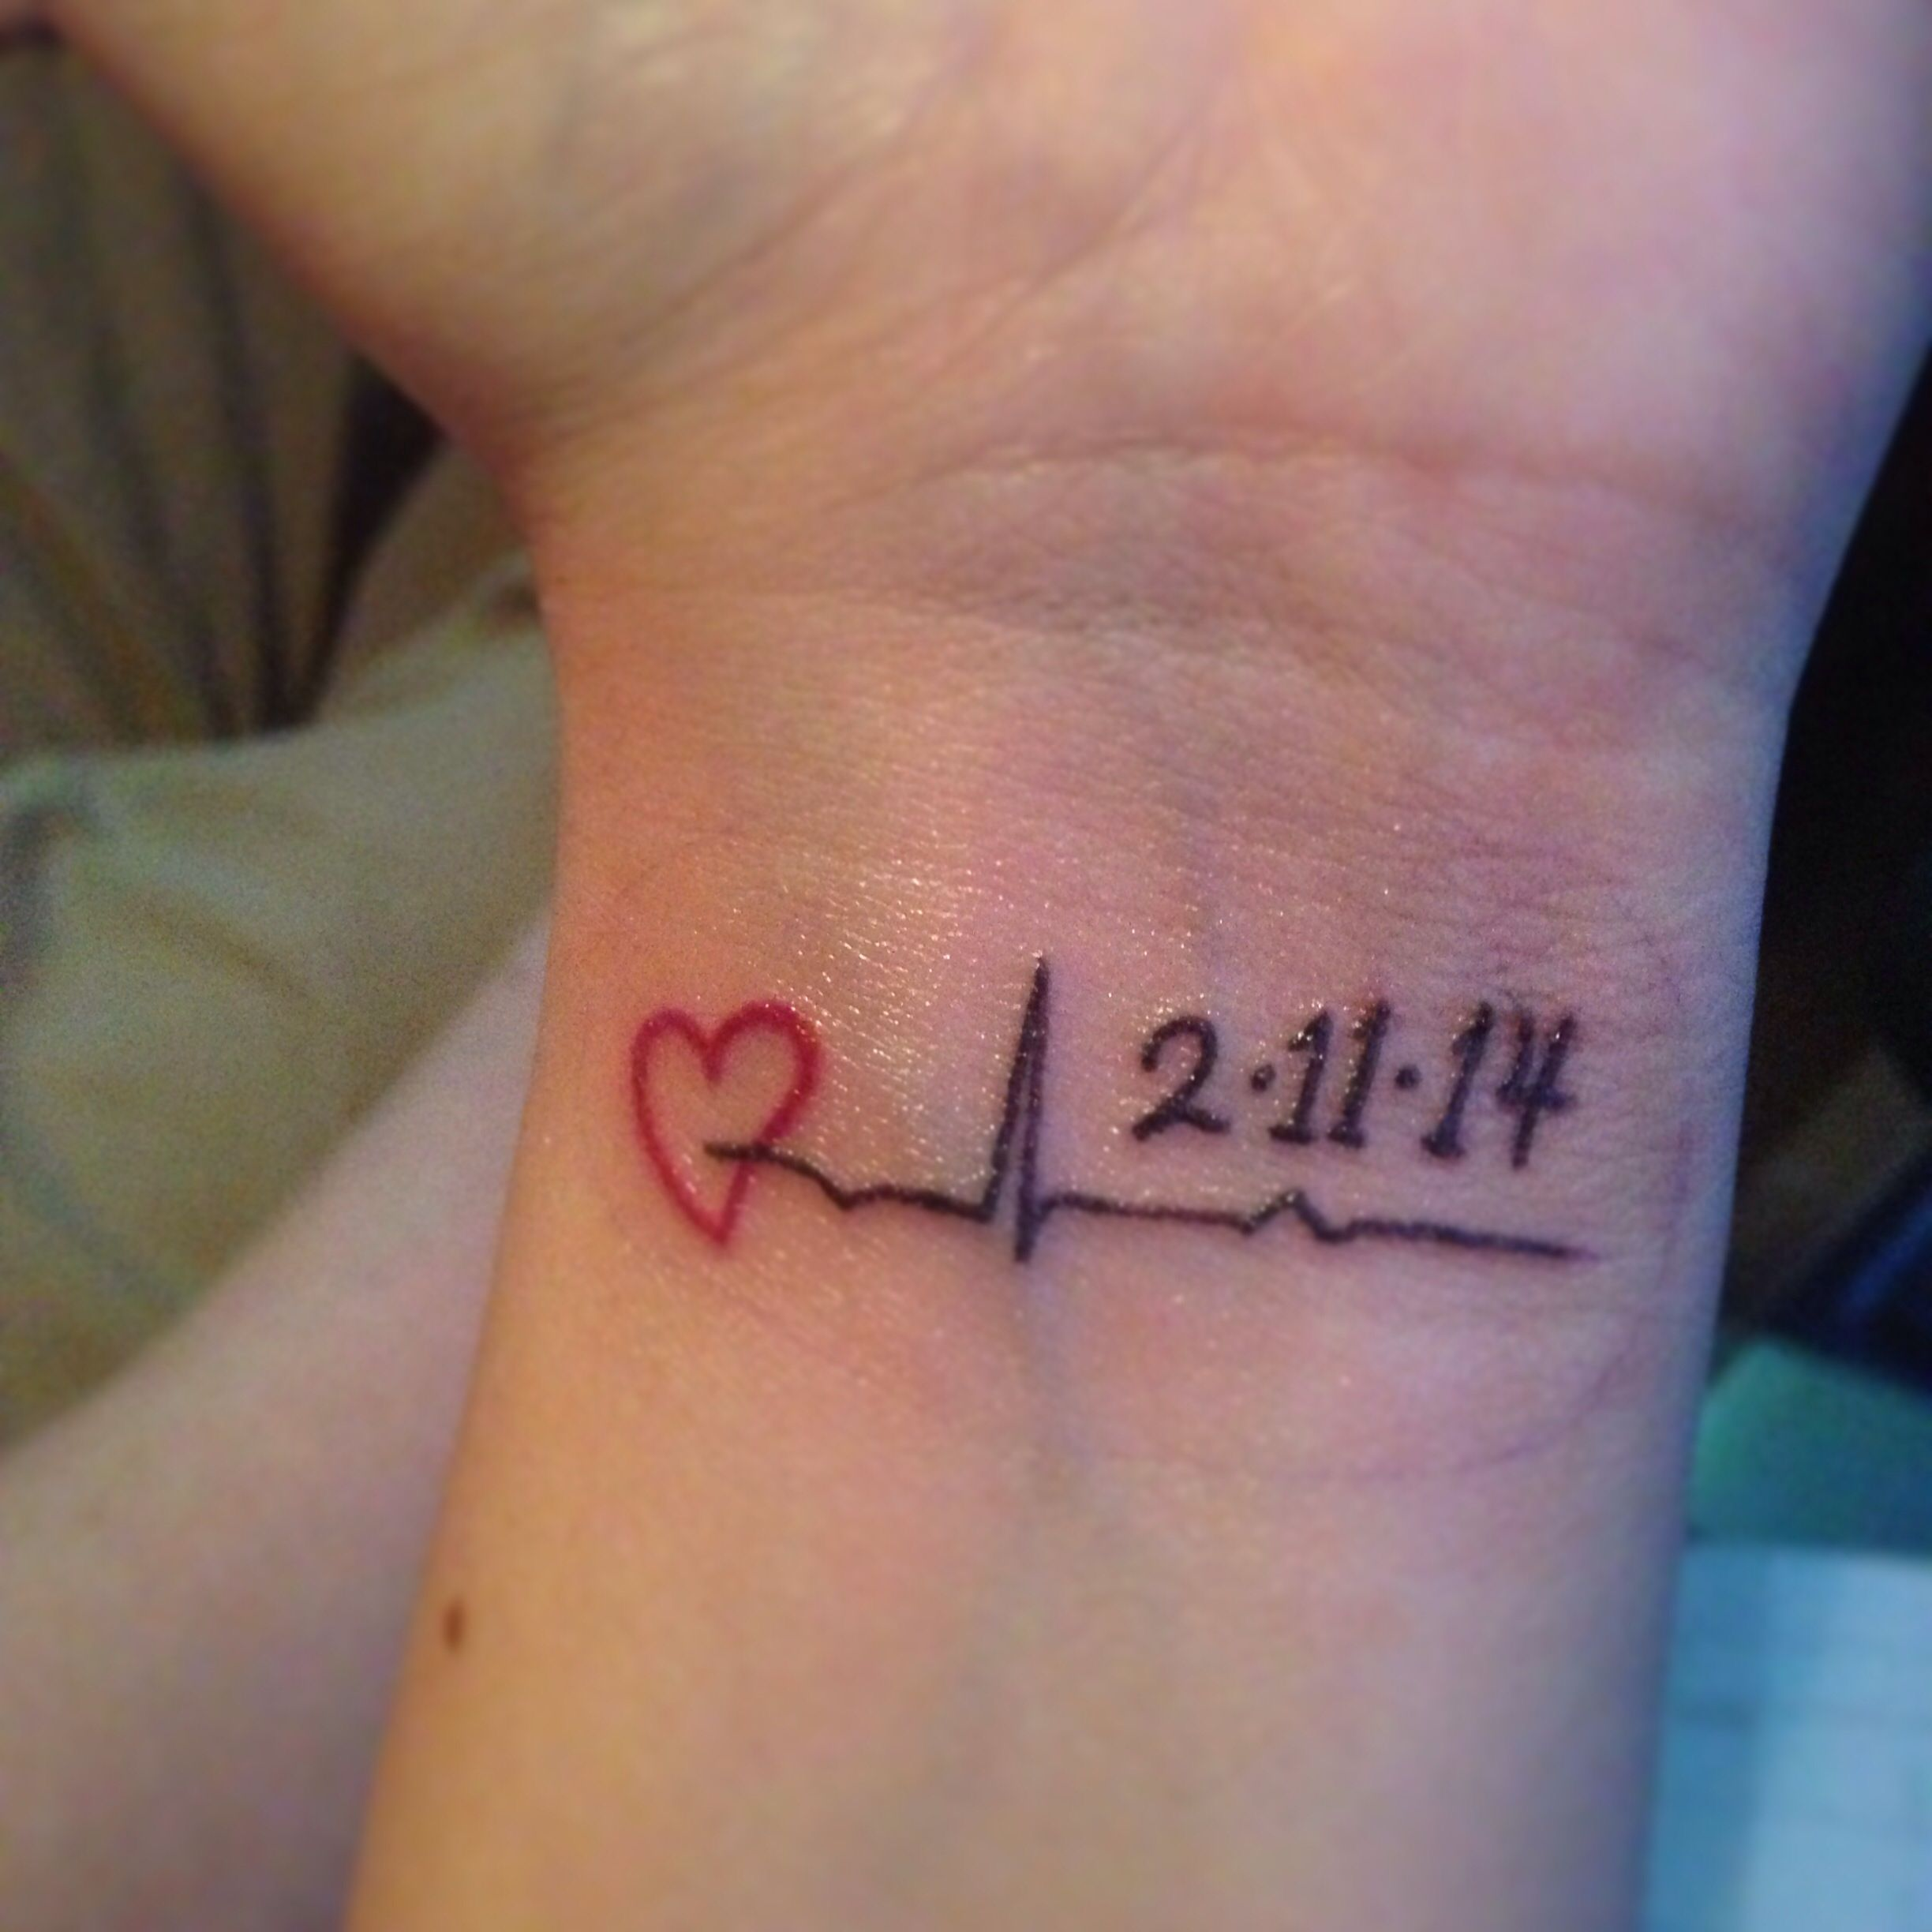 My Memorial Tattoo For Nana This Is Her Last Heartbeat Before She Became An Angel I Will Forever Ever Have Tattoo Designs Wrist Dad Tattoos Heartbeat Tattoo